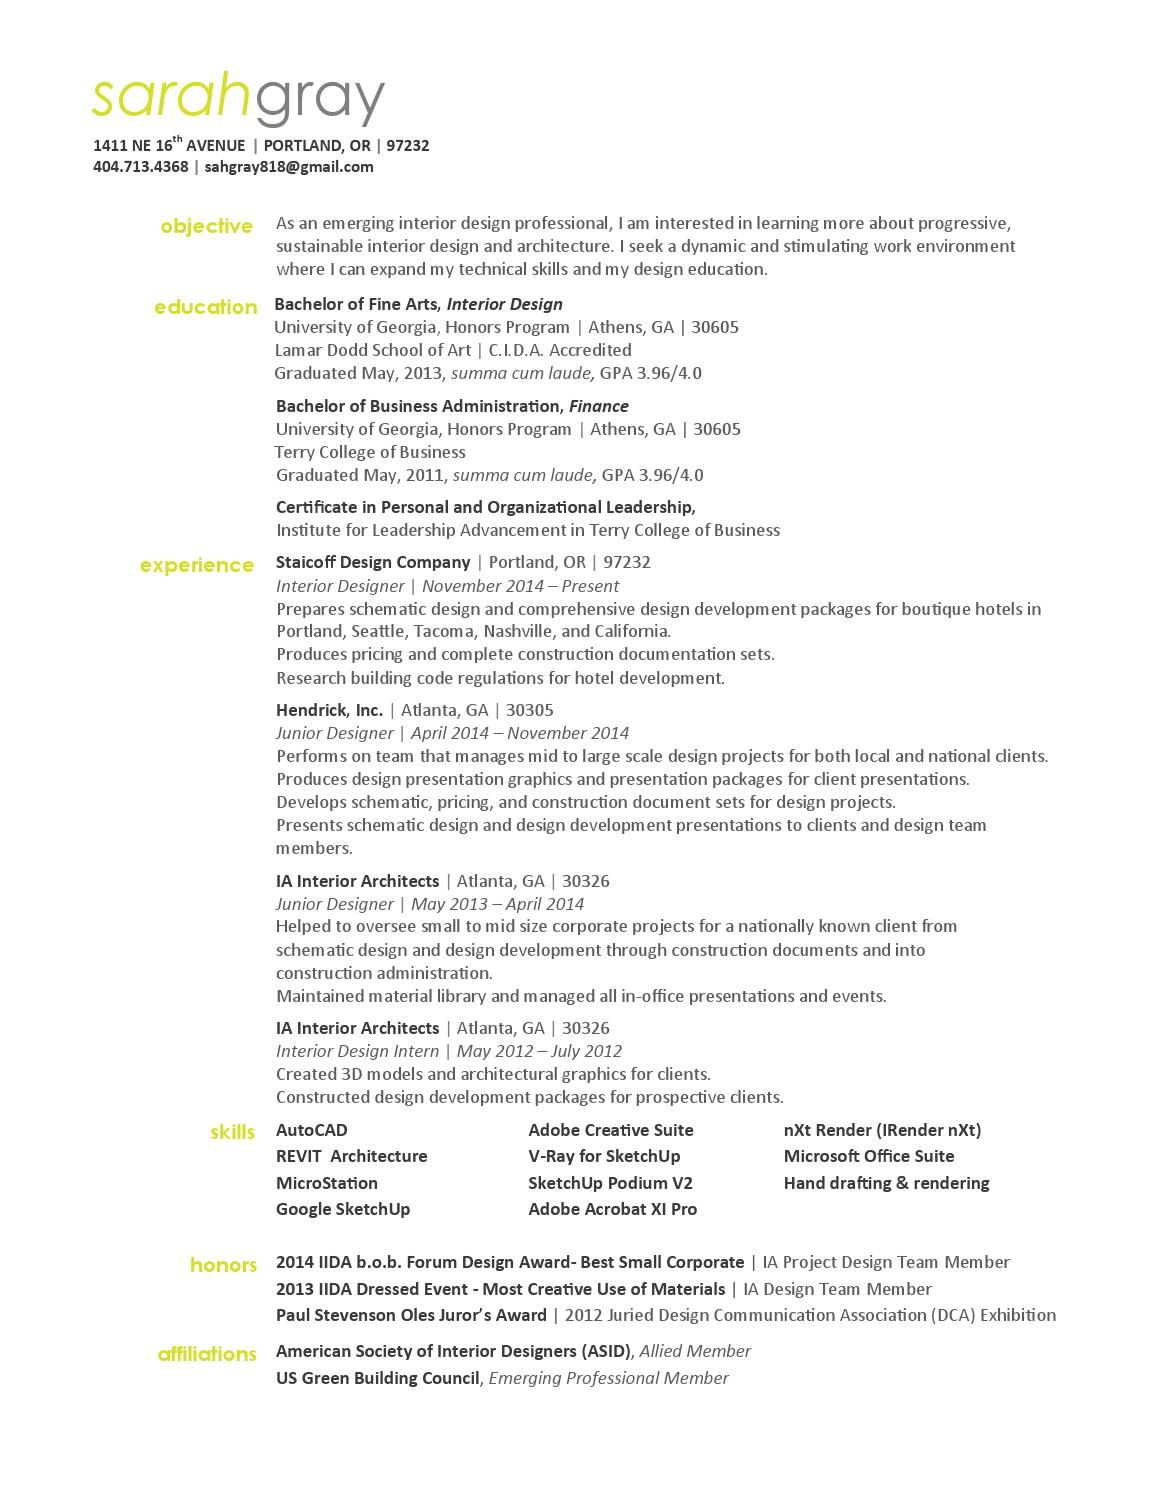 Double Major On Resume Awesome Ammco Bus Resume Education